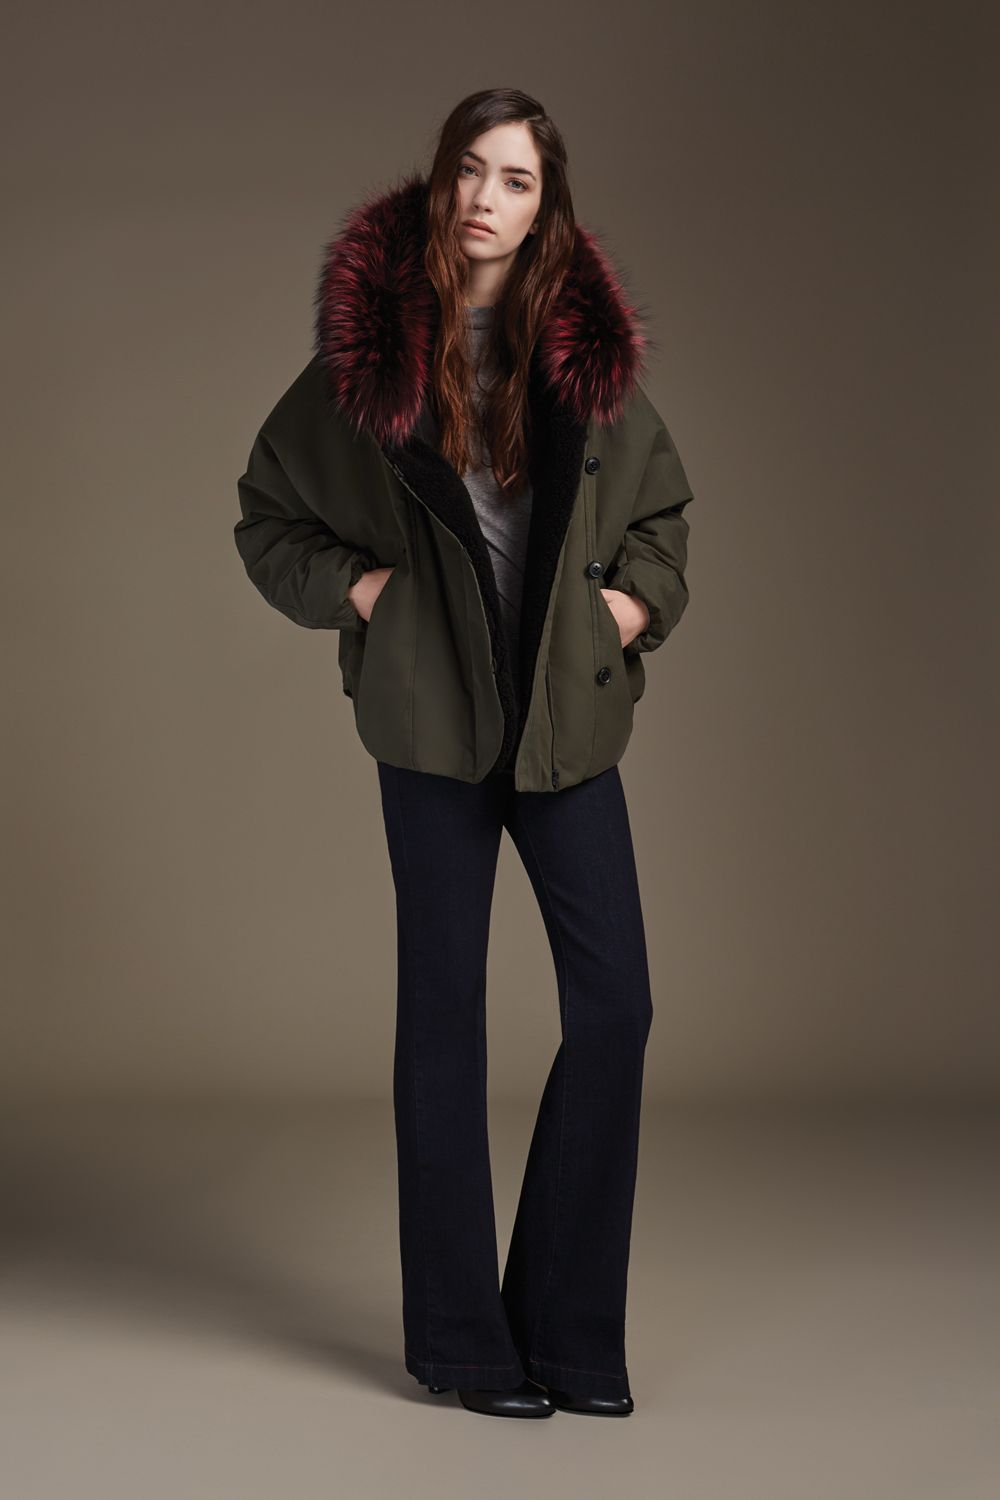 MADELYN is a bomber fit down-filled jacket with oversize hood and removable coloured fur trim. The water resistant microfiber shell, Sherpa lining and asymmetrical closure add extra warmth. This statement jacket is perfect for a cold day in the city or a winter country get-away. Discover at http://www.soiakyo.com/ca/en/madelyn-bomber-fit-down-jacket-with-removable-fur-in-moss-for-women